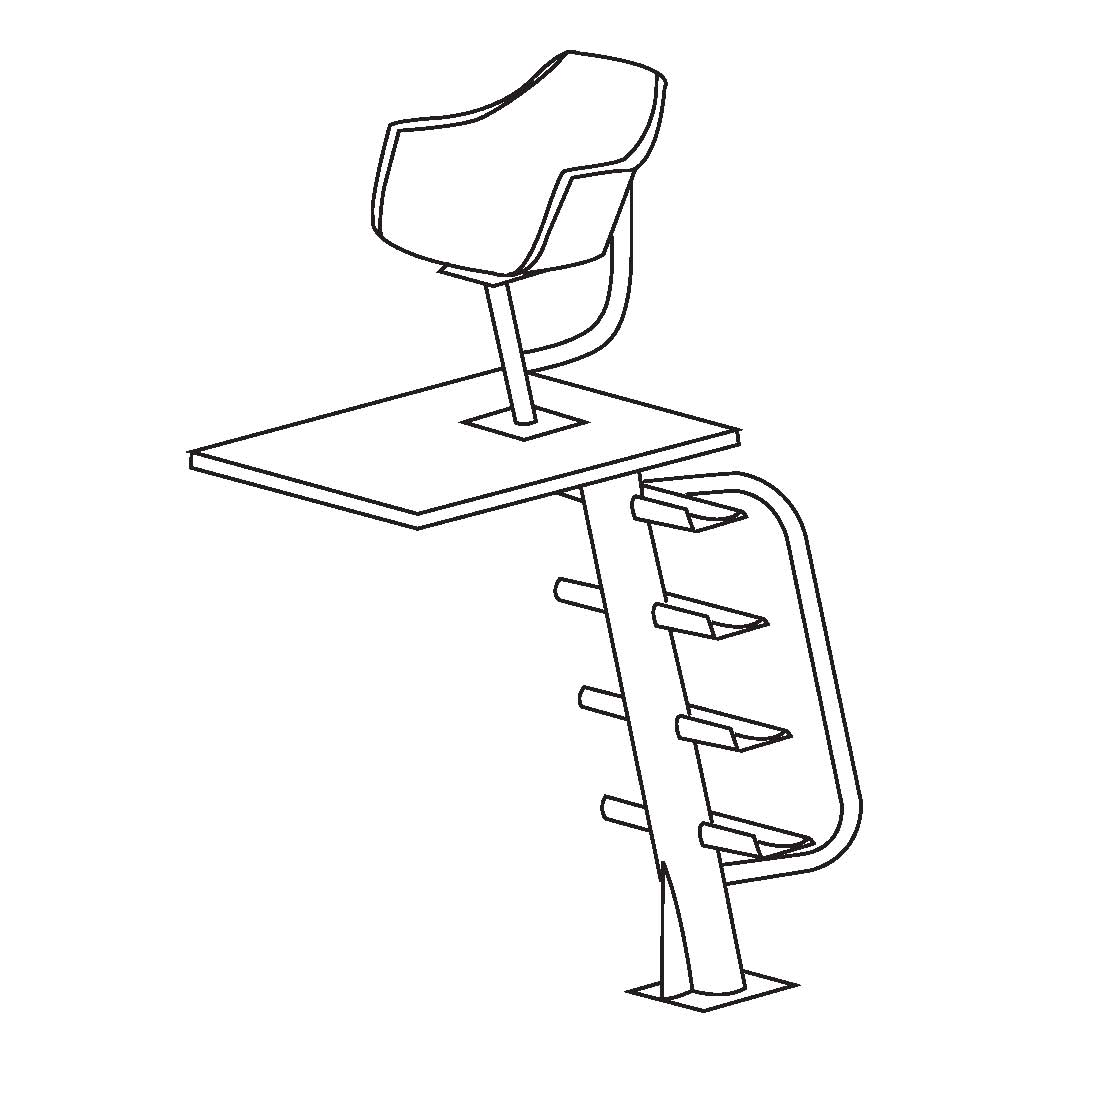 coloring pages of lifeguard stand - photo#10